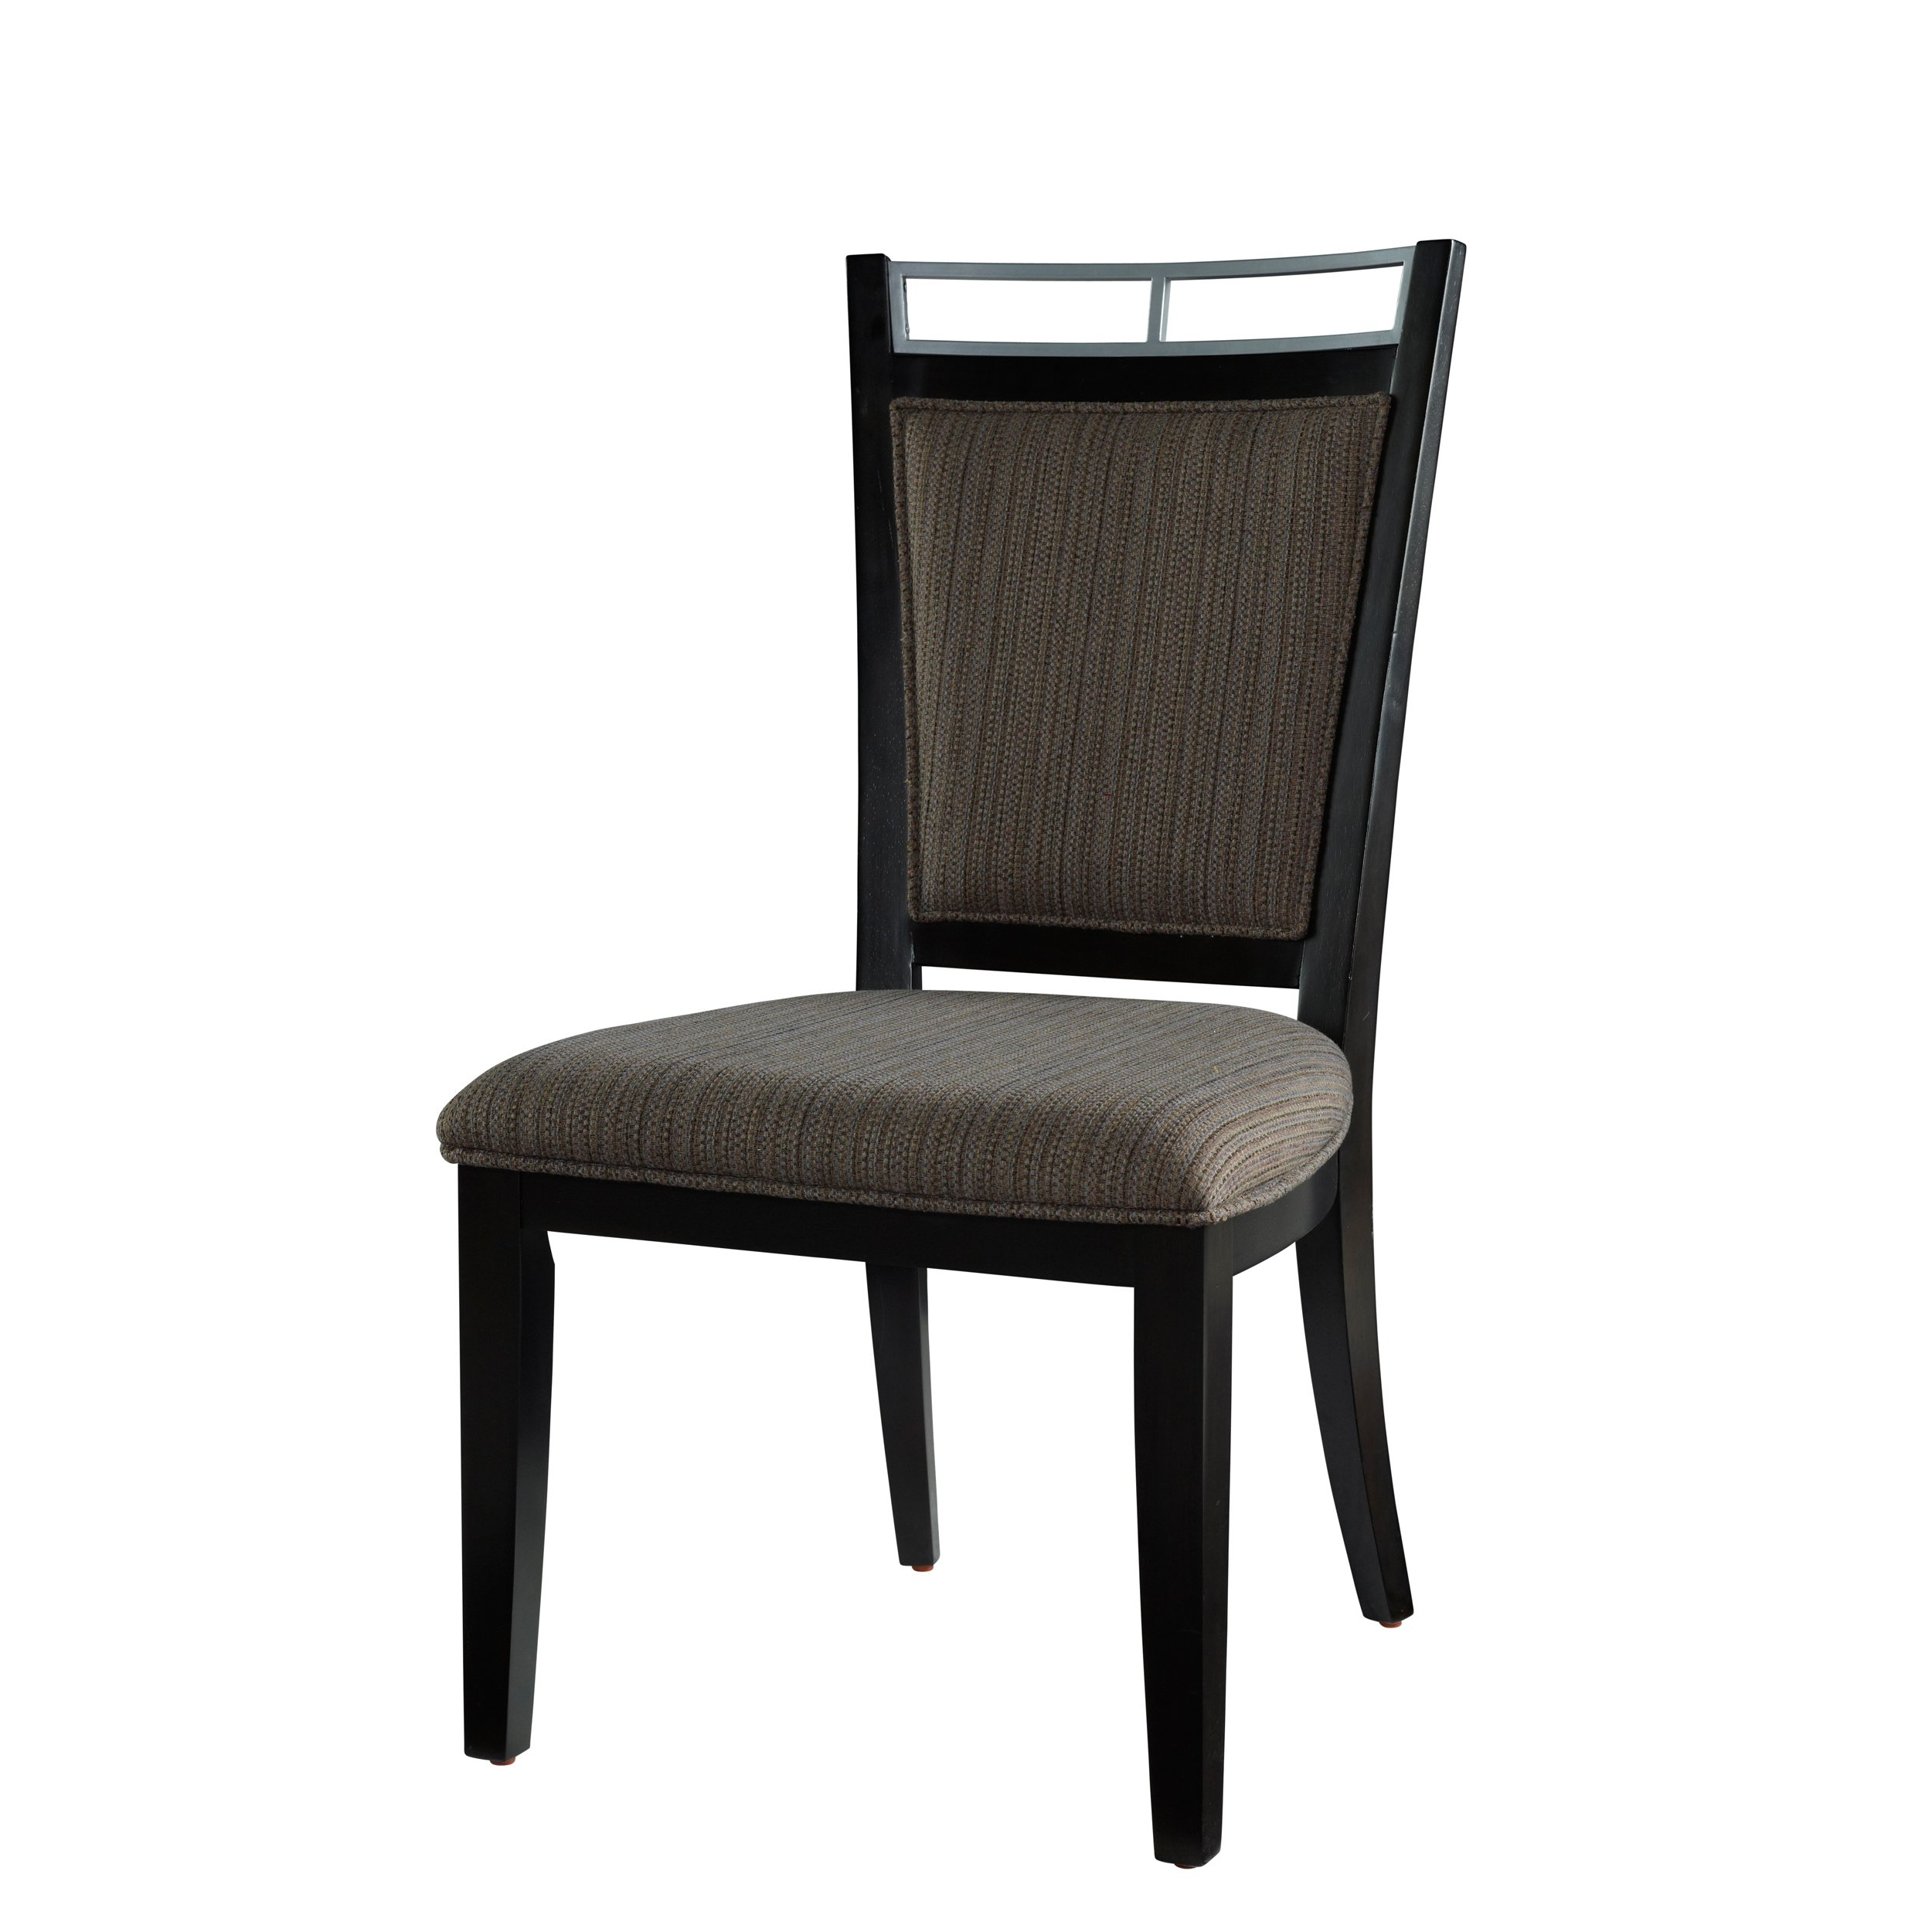 Most Recent Shop Caden Dining Chair – Free Shipping Today – Overstock – 14585615 Pertaining To Caden Round Dining Tables (View 16 of 25)